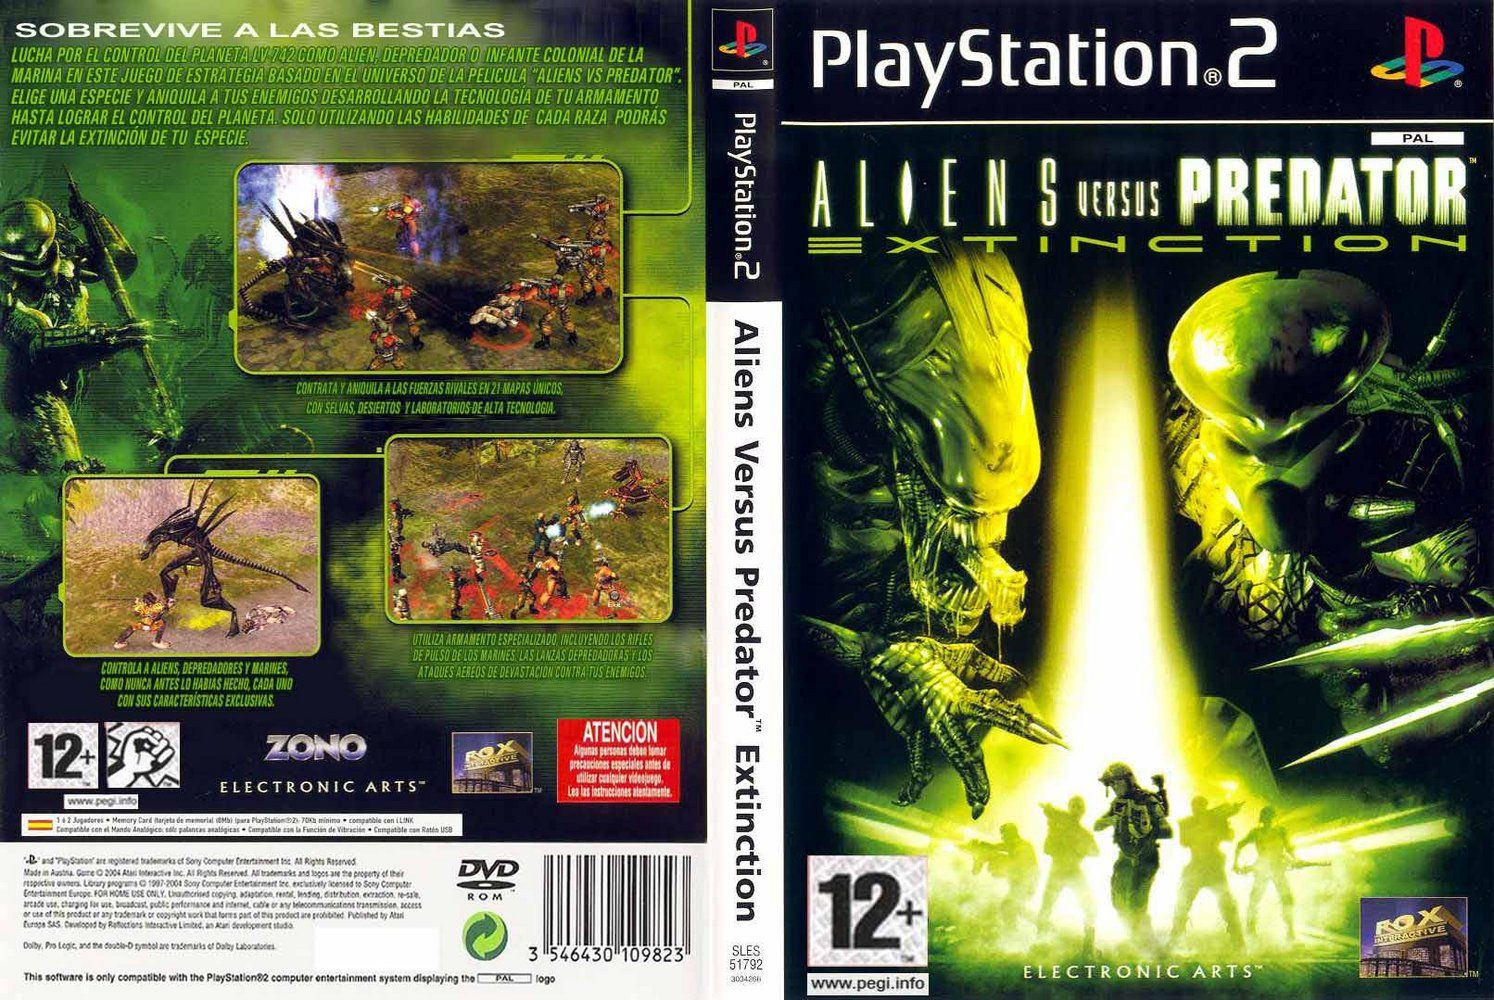 AlienVSDepredador Alien_Vs_Predator_Extinction-DVD-PS2